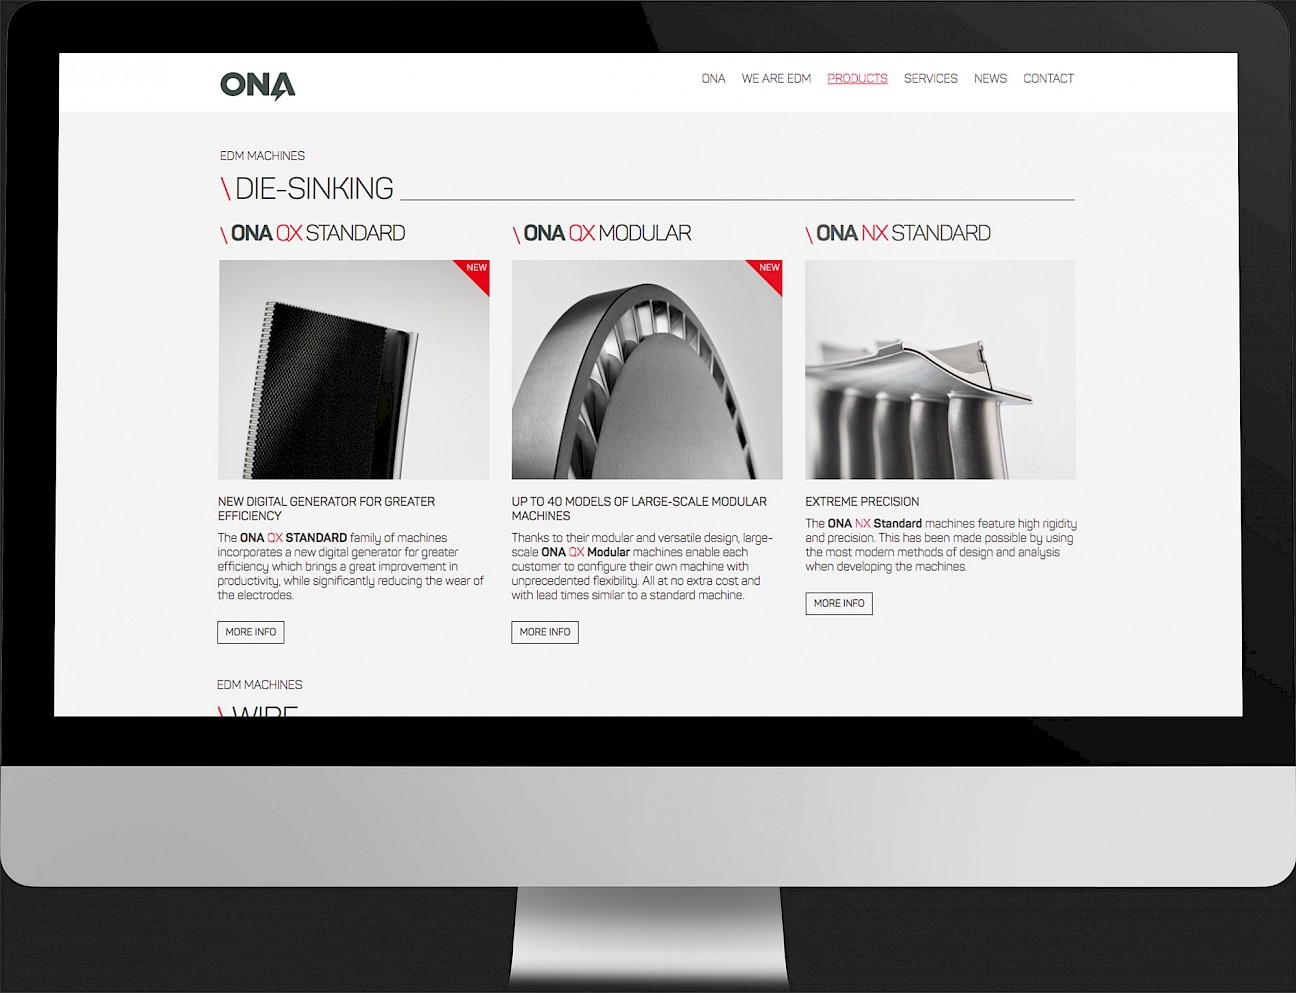 digital ona technology website spaces 03 branding narrative move design